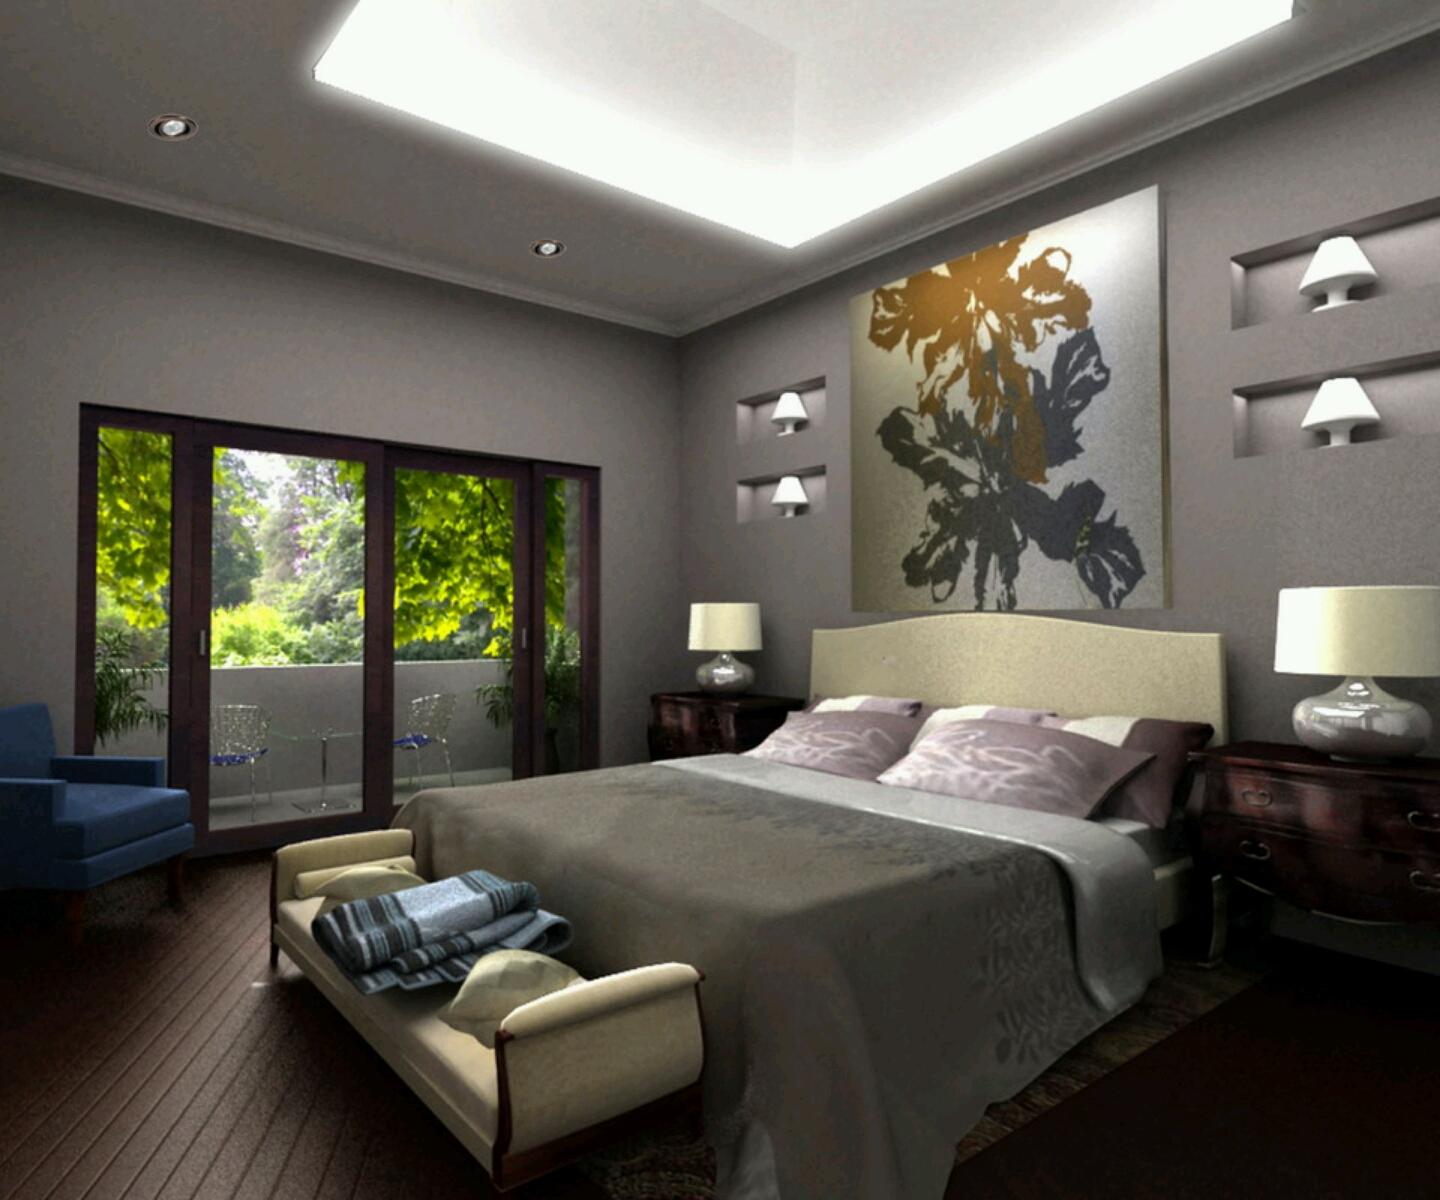 Modern Bed Designs Beautiful Bedrooms Designs Ideas regarding 15 Some of the Coolest Designs of How to Improve Beautiful Modern Bedrooms